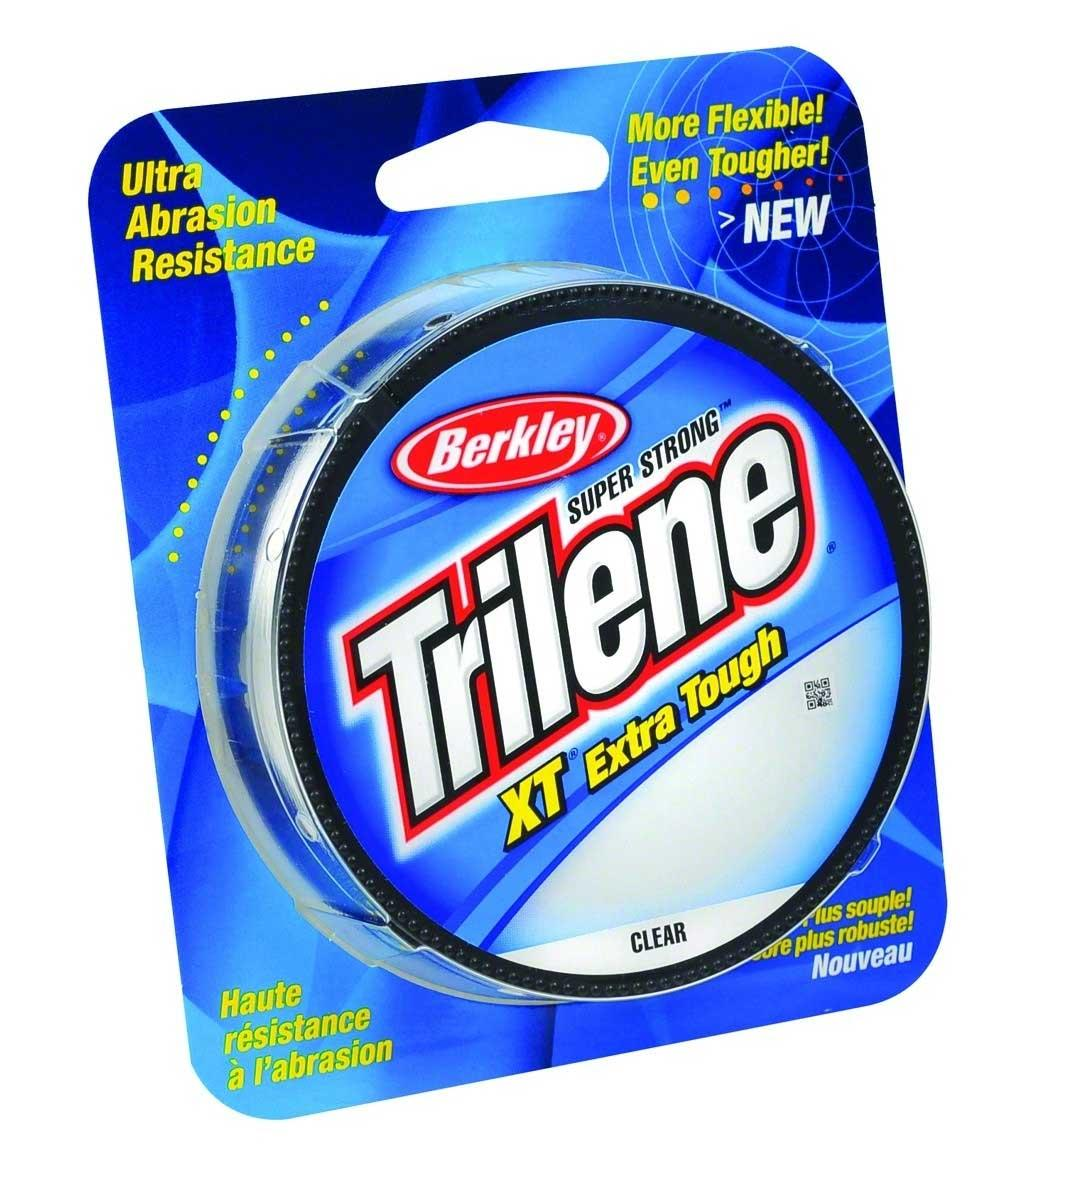 Berkley XTFS25-15 Trilene XT Filler Spool 25lb 250yds Clear_1.jpg